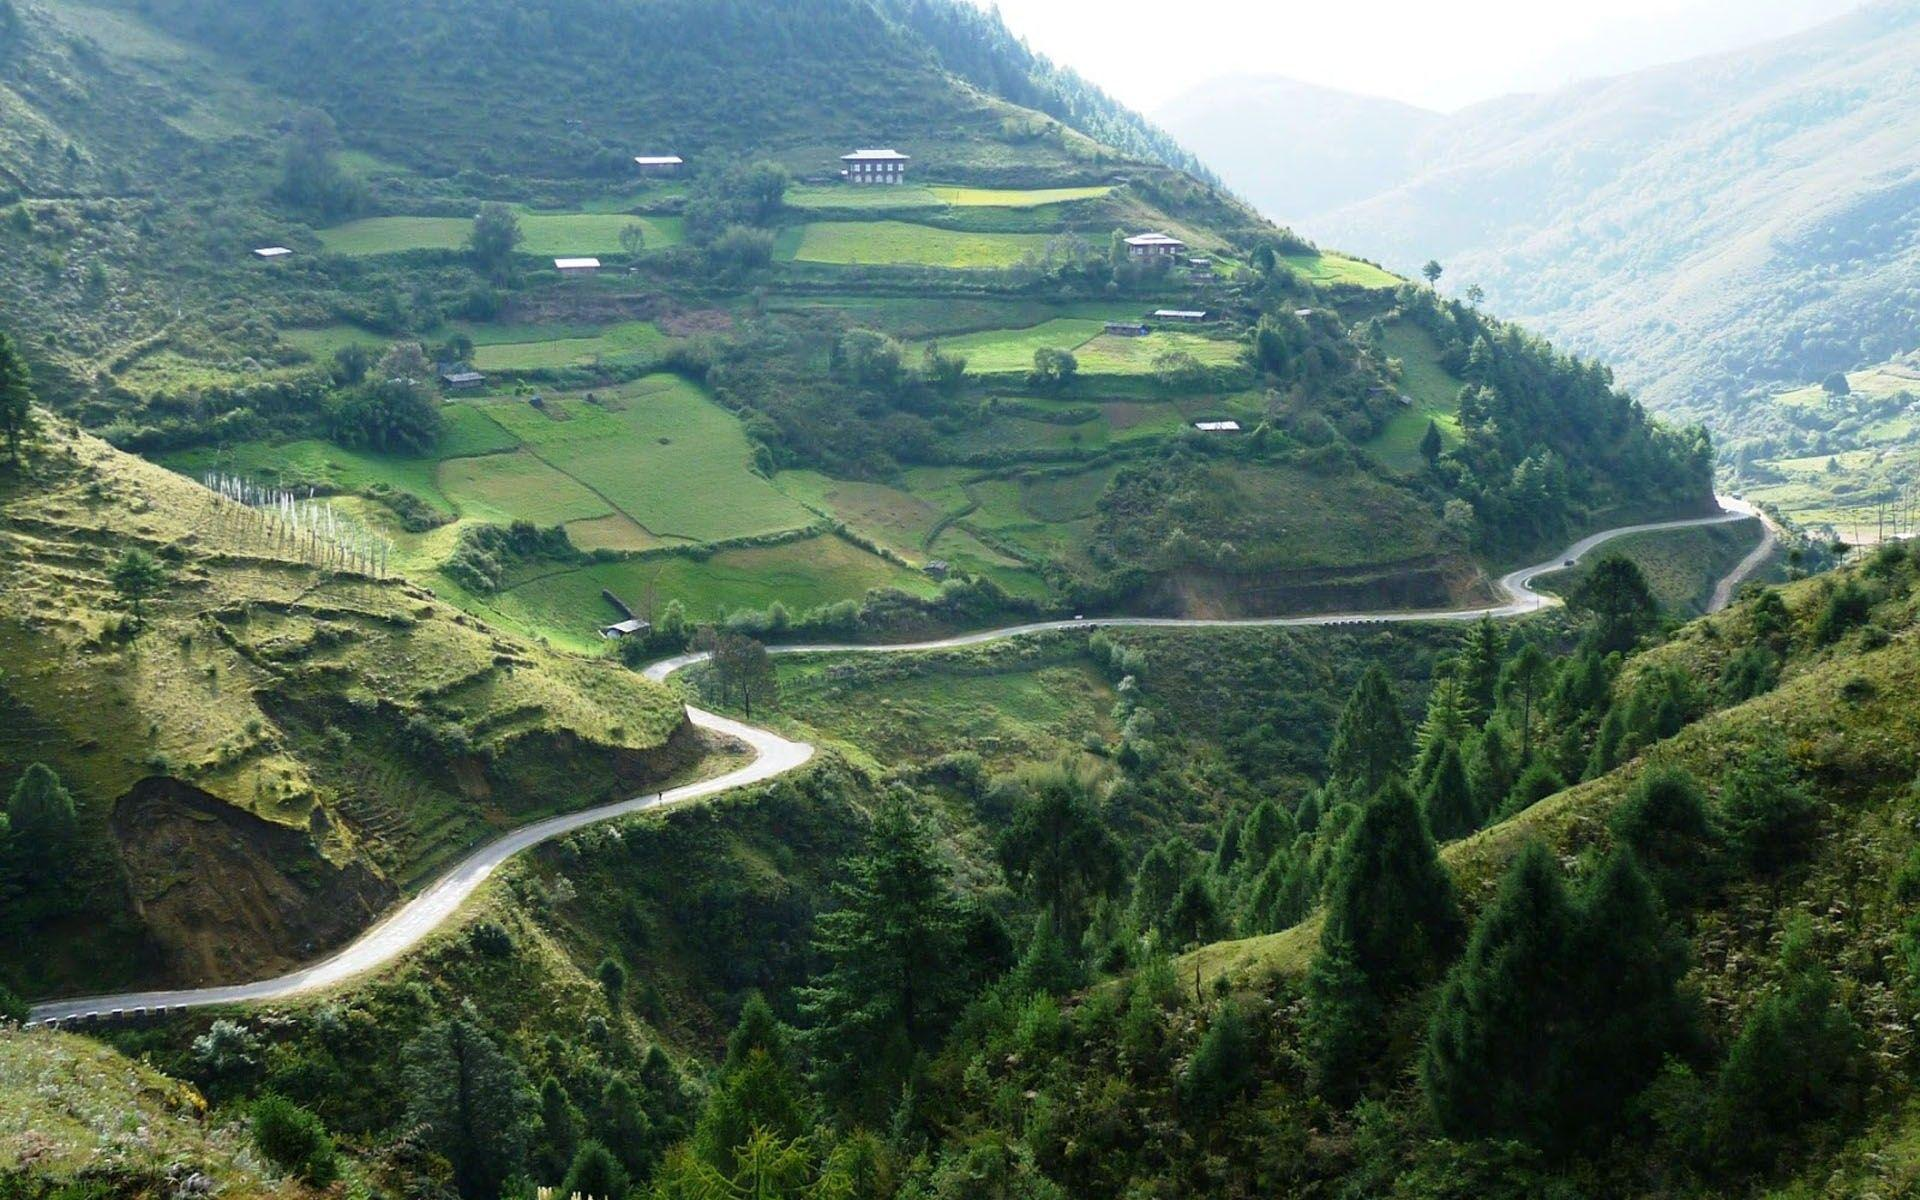 Natural Scenery Bhutan | HD Wallpapers | Pinterest | Scenery and ...